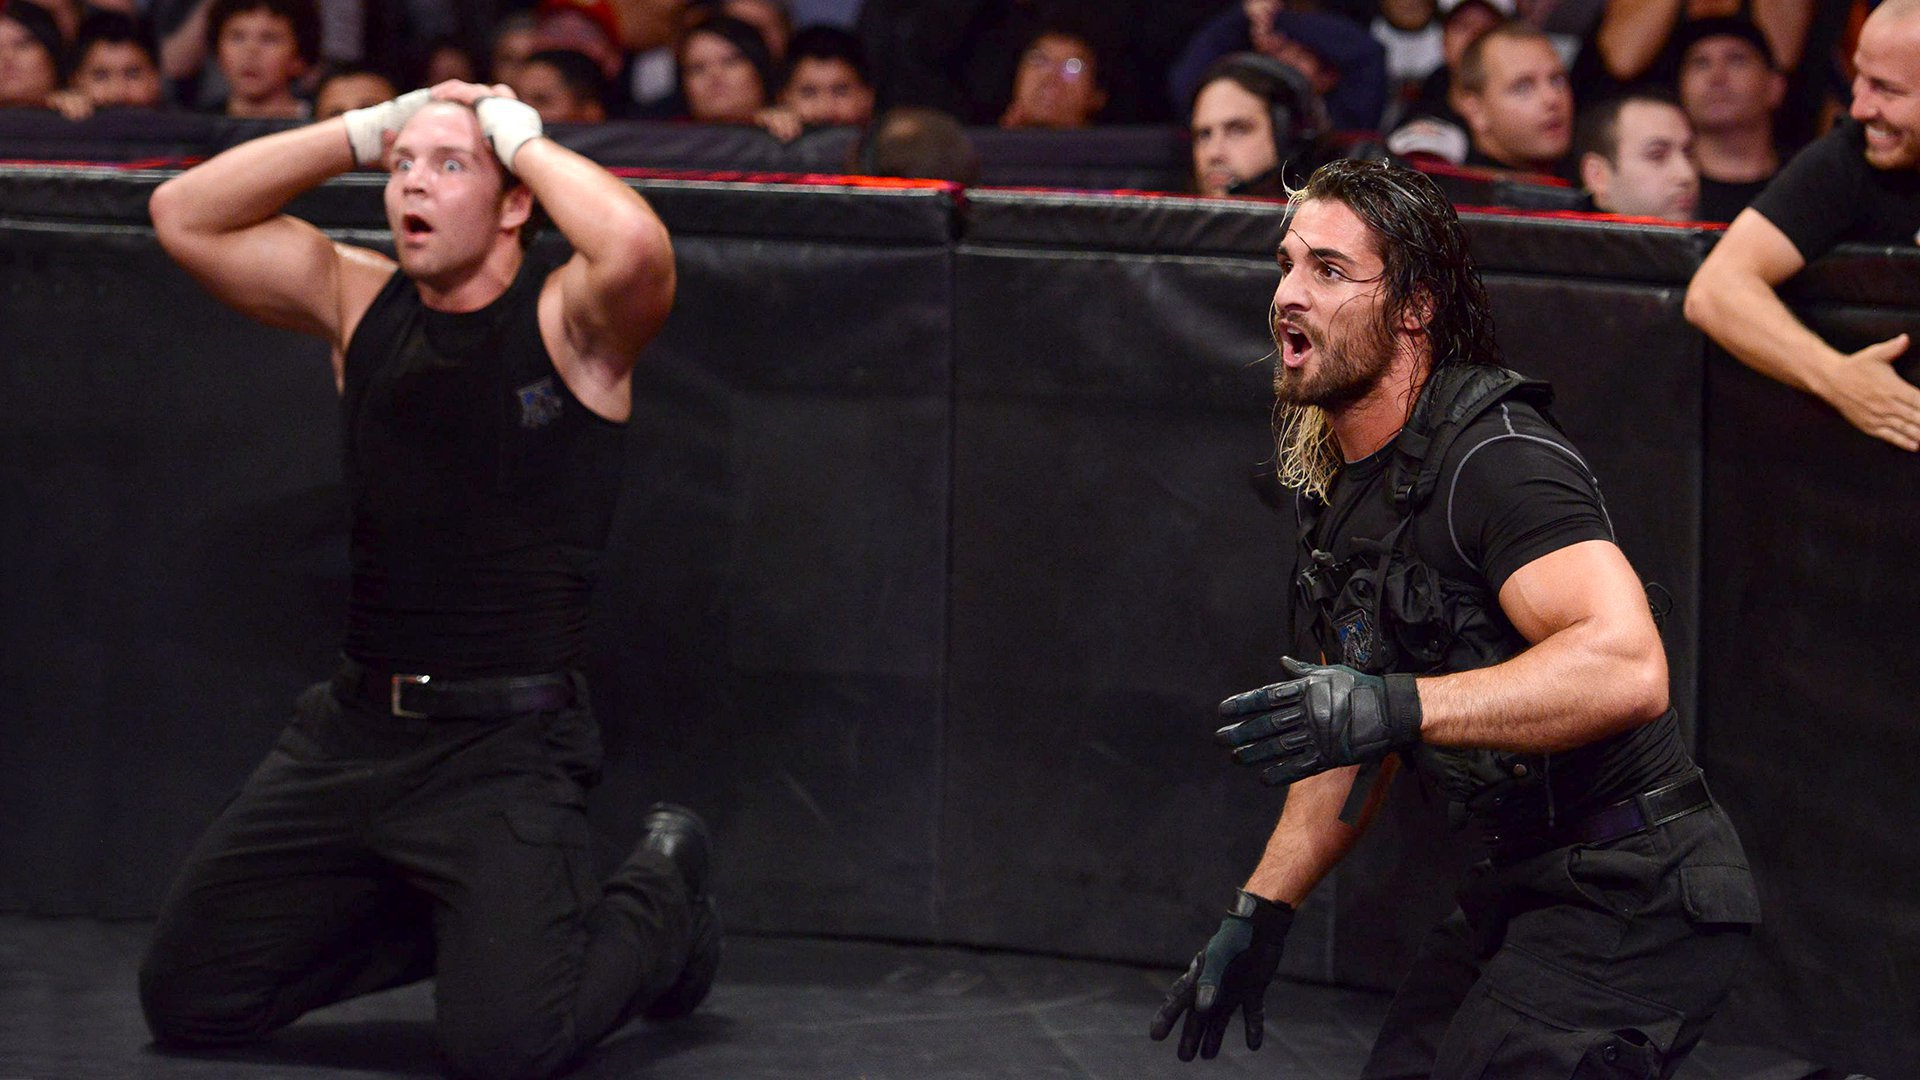 The Shield vs. Daniel Bryan, Dolph Ziggler, Rob Van Dam, The Usos, The Prime Time Players, Zack Ryder, R-Truth, Kofi Kingston & Justin Gabriel: 11-on-3 Handicap Elimination Match: Raw, Sept. 23, 2013